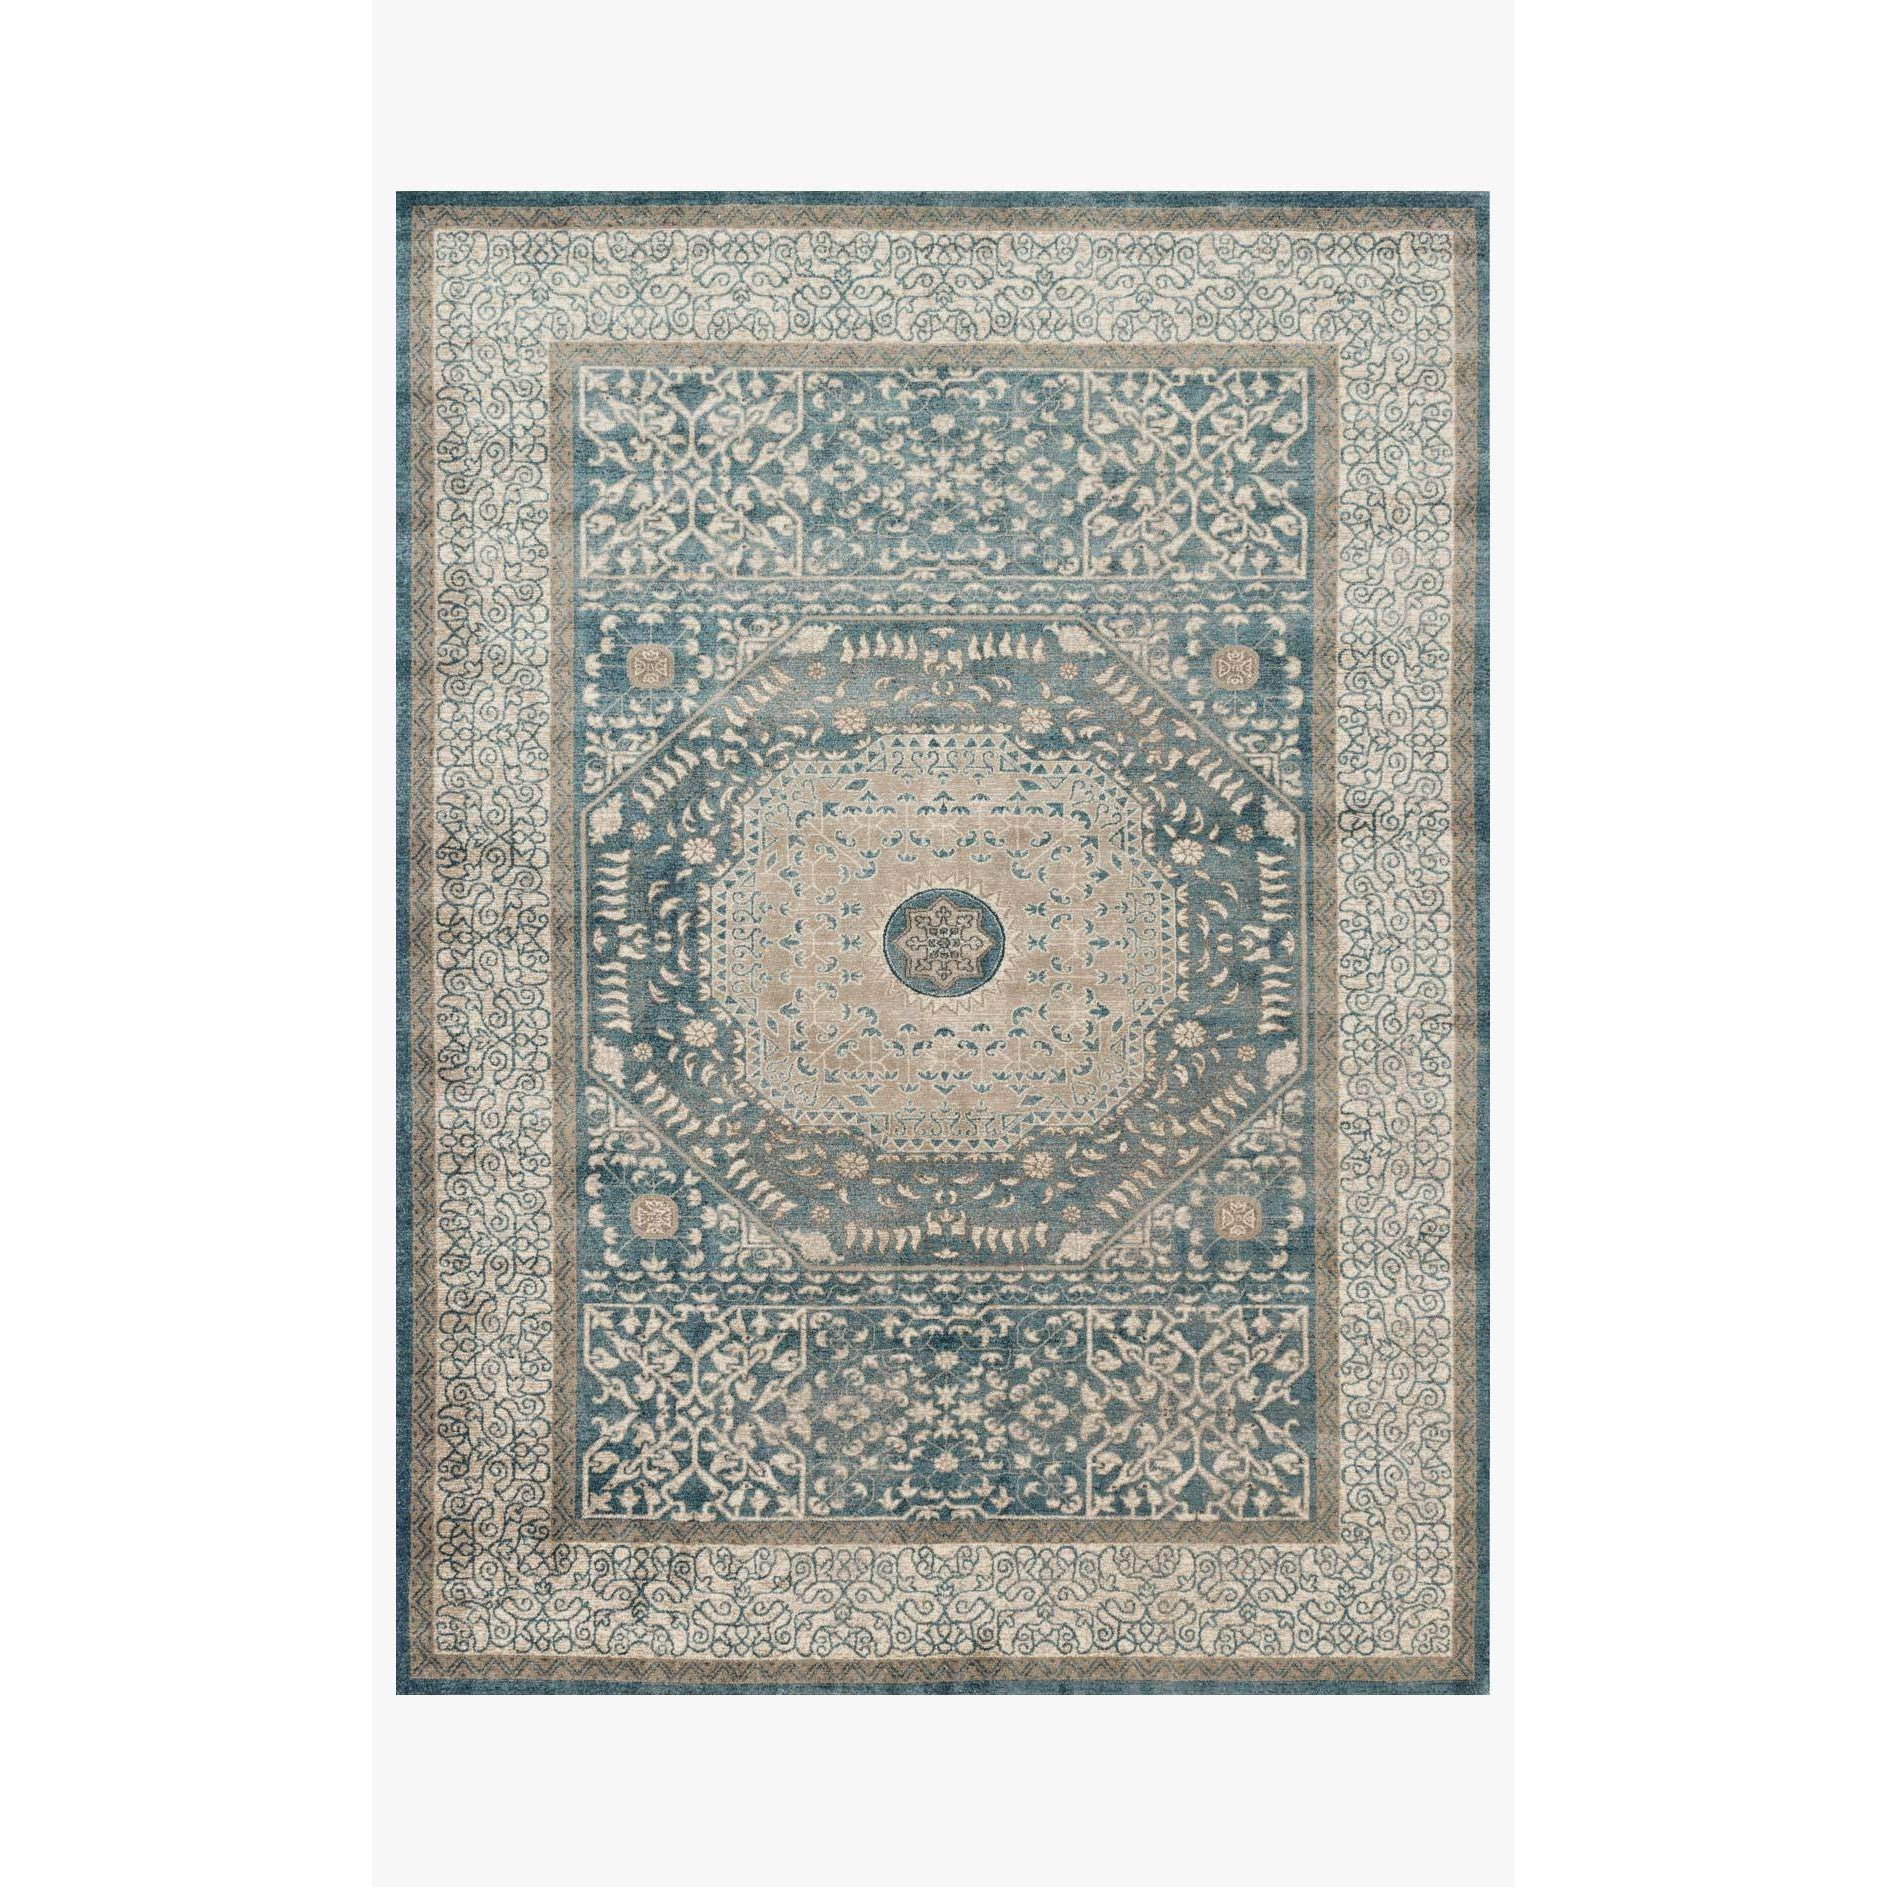 Century Rug by Loloi Rugs - CQ-01 - Blue Sand